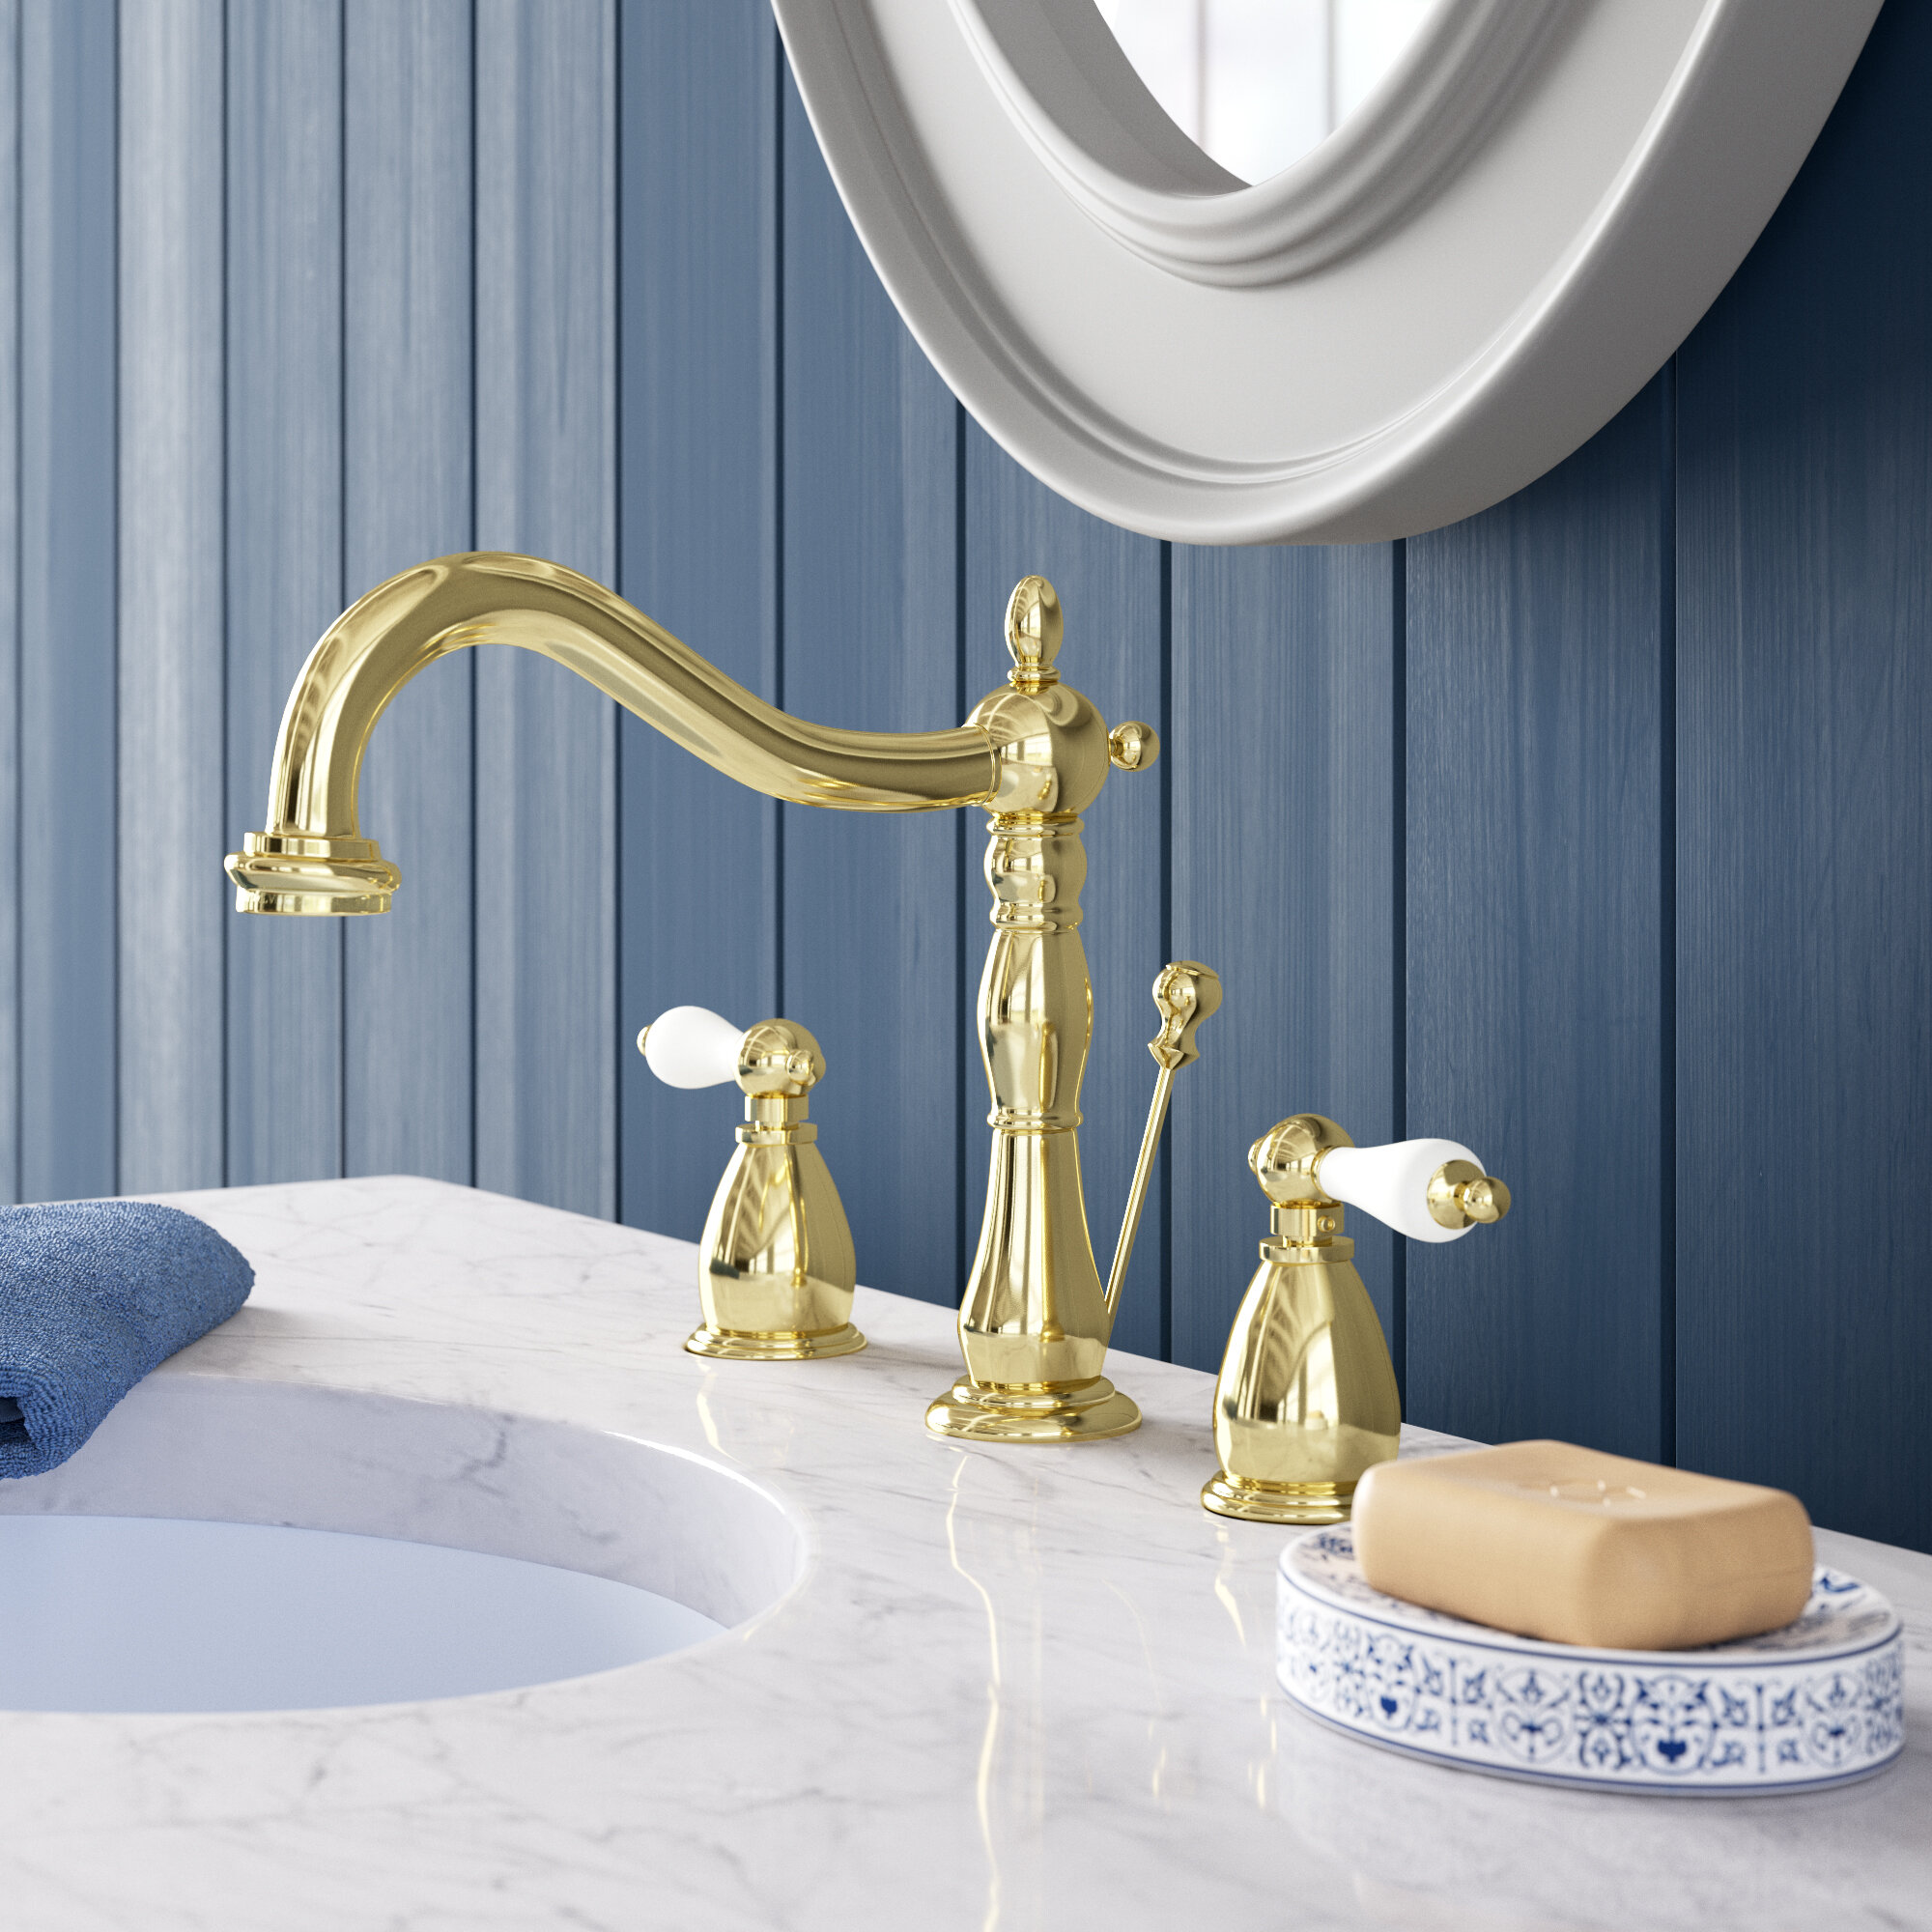 Heritage Widespread Bathroom Faucet With Drain Assembly Reviews Birch Lane